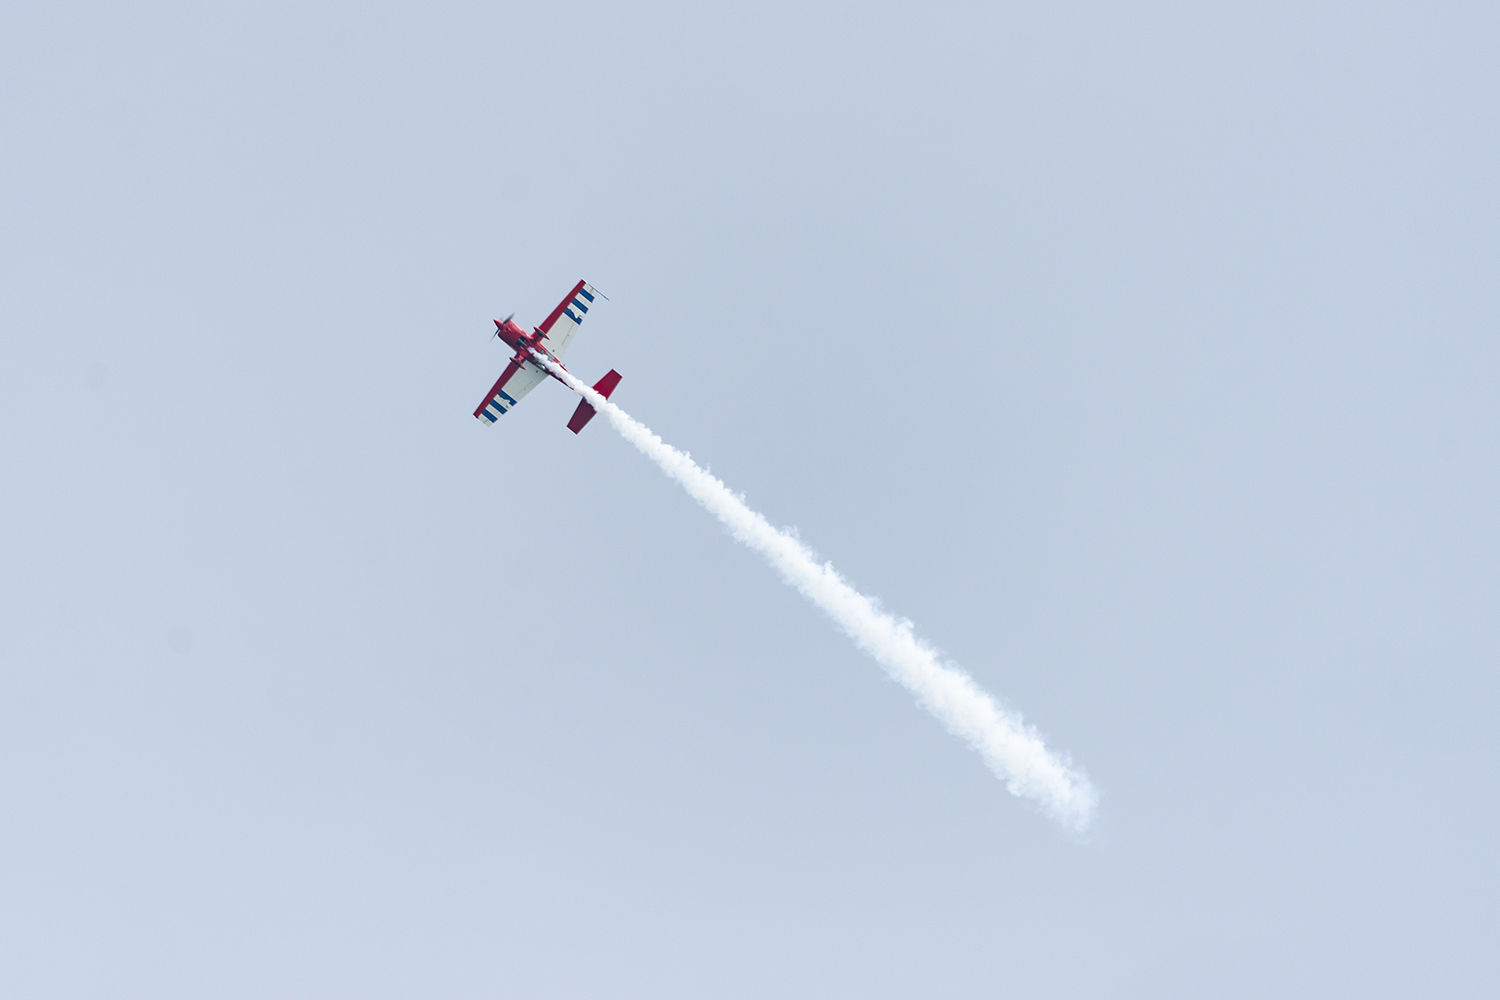 A+member+of+the+Firebirds+Delta+Team+soars+through+the+sky+Aug.+17+over+thousands+of+fans+at+North+Avenue+Beach%2C+1600+N.+Lake+Shore+Dr.